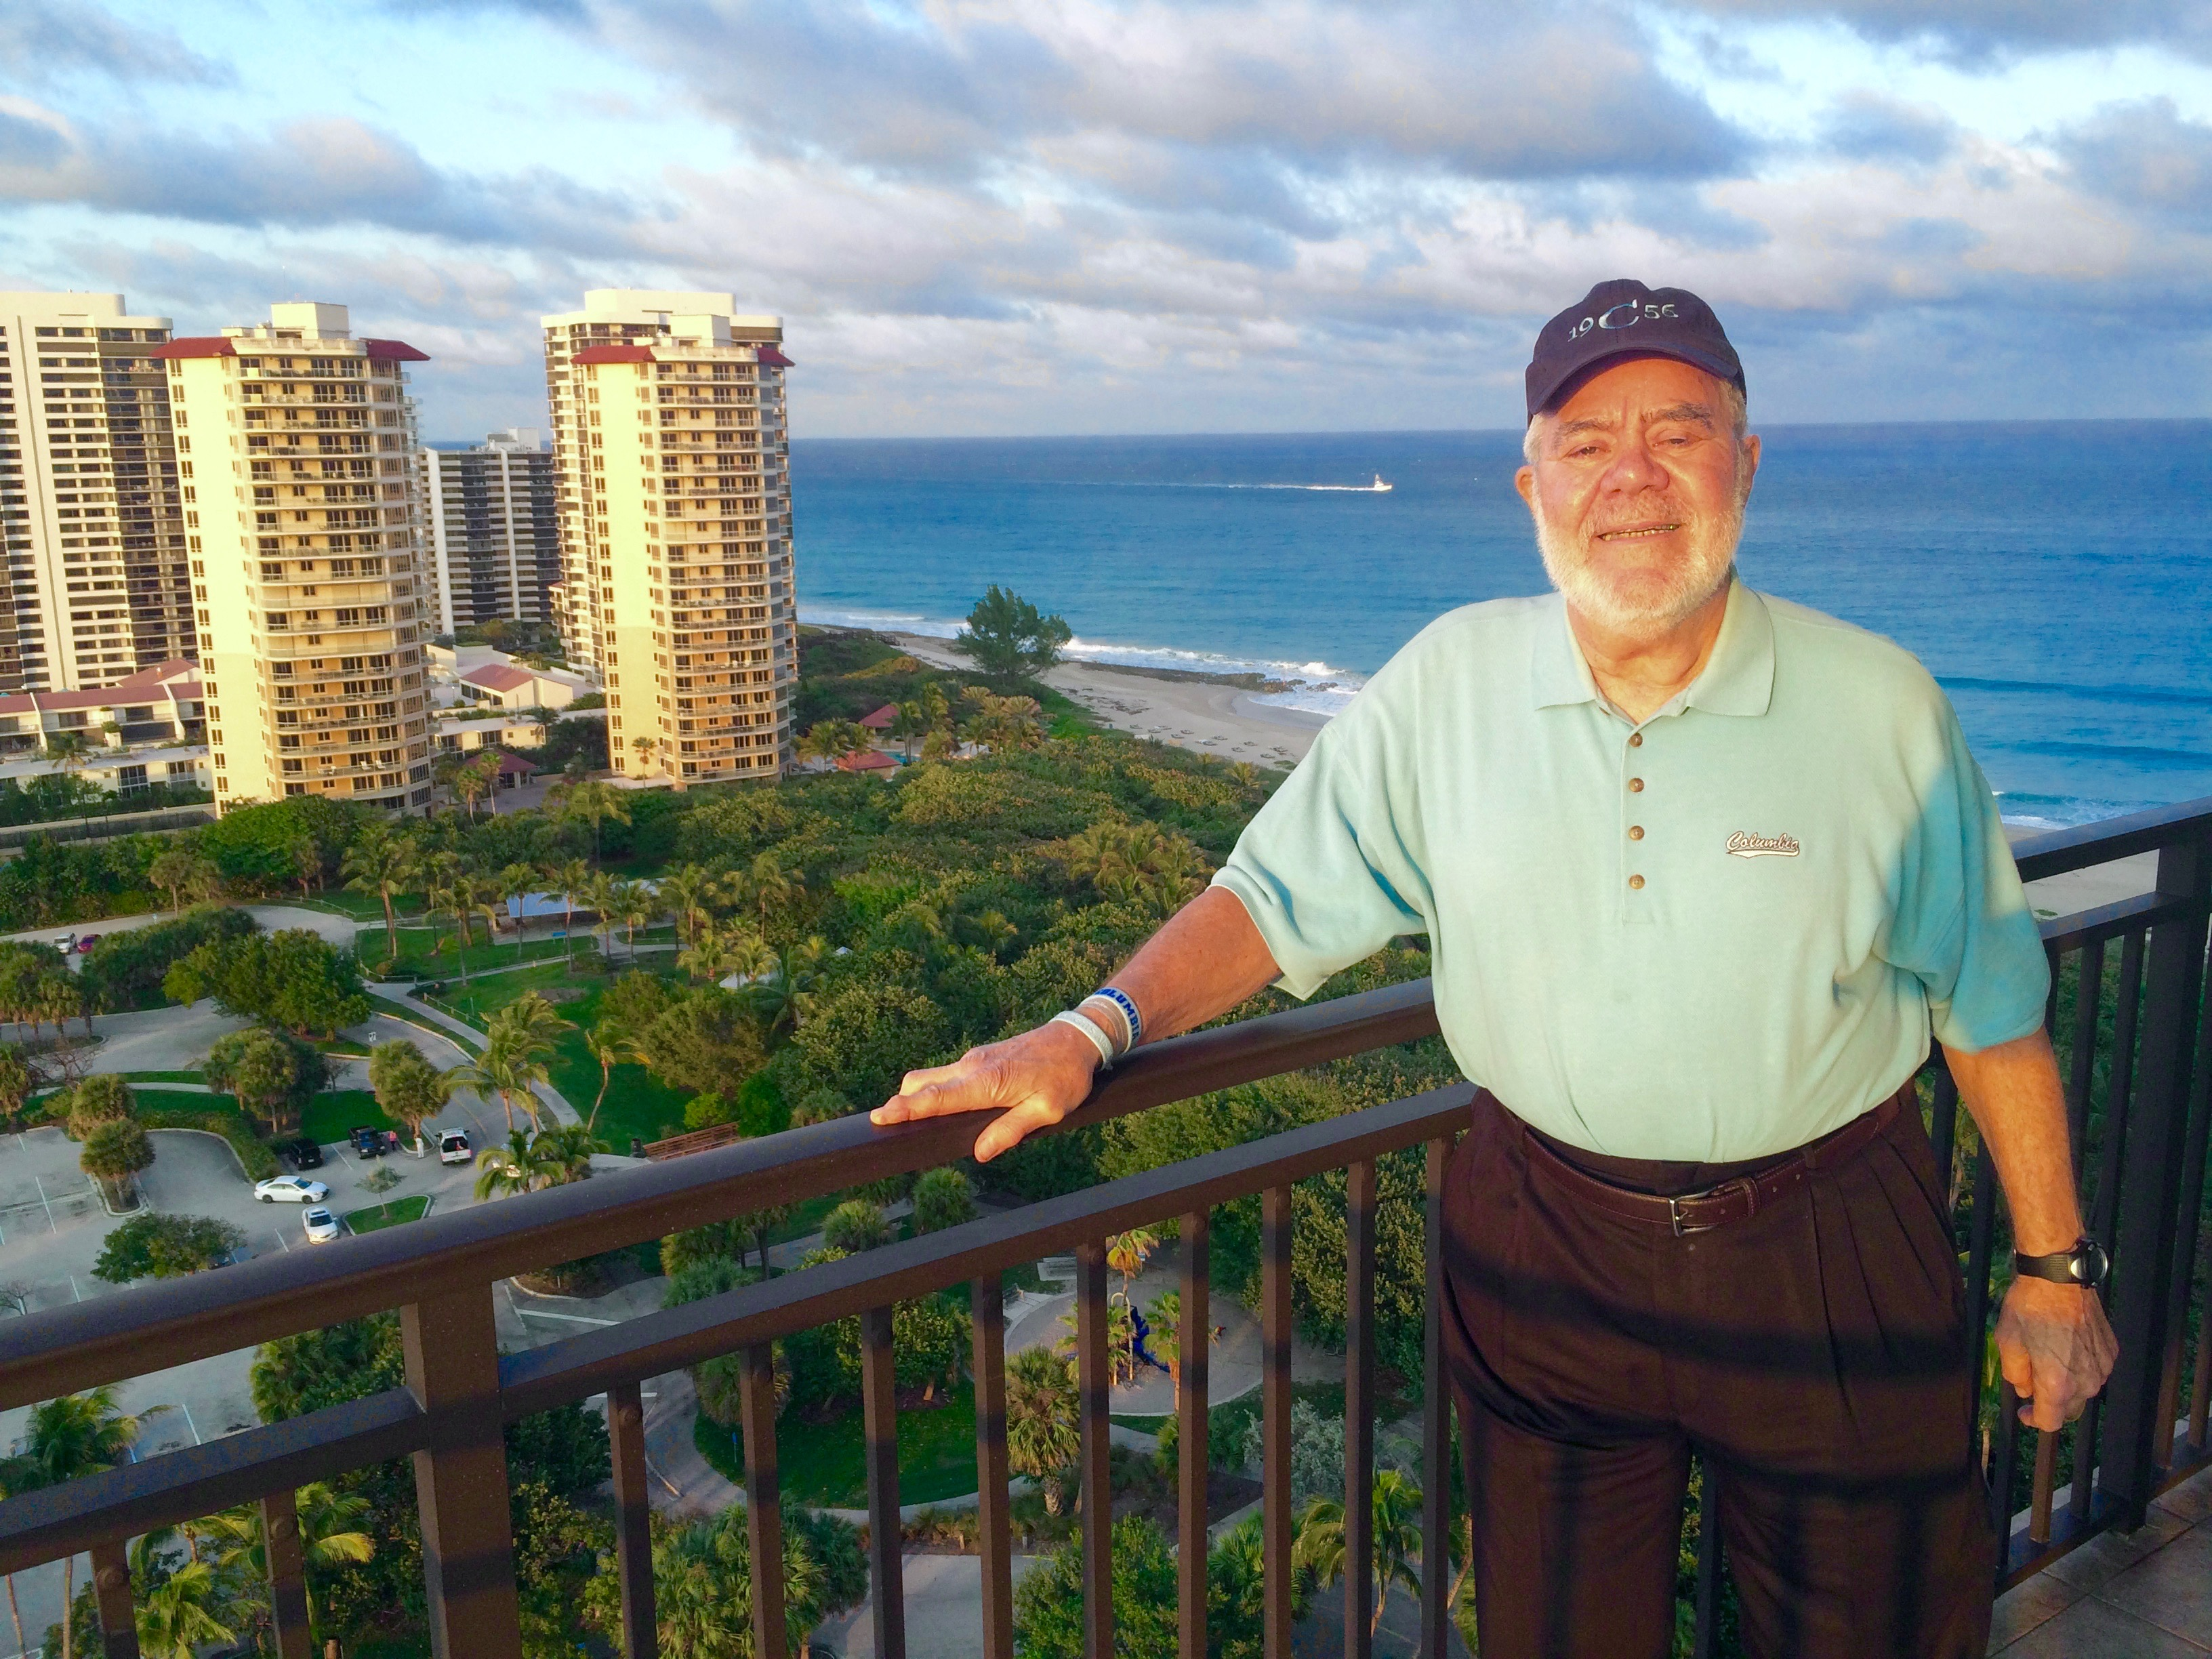 Ron on the balcony of the Marriott Singer Island Beach Resort & Spa